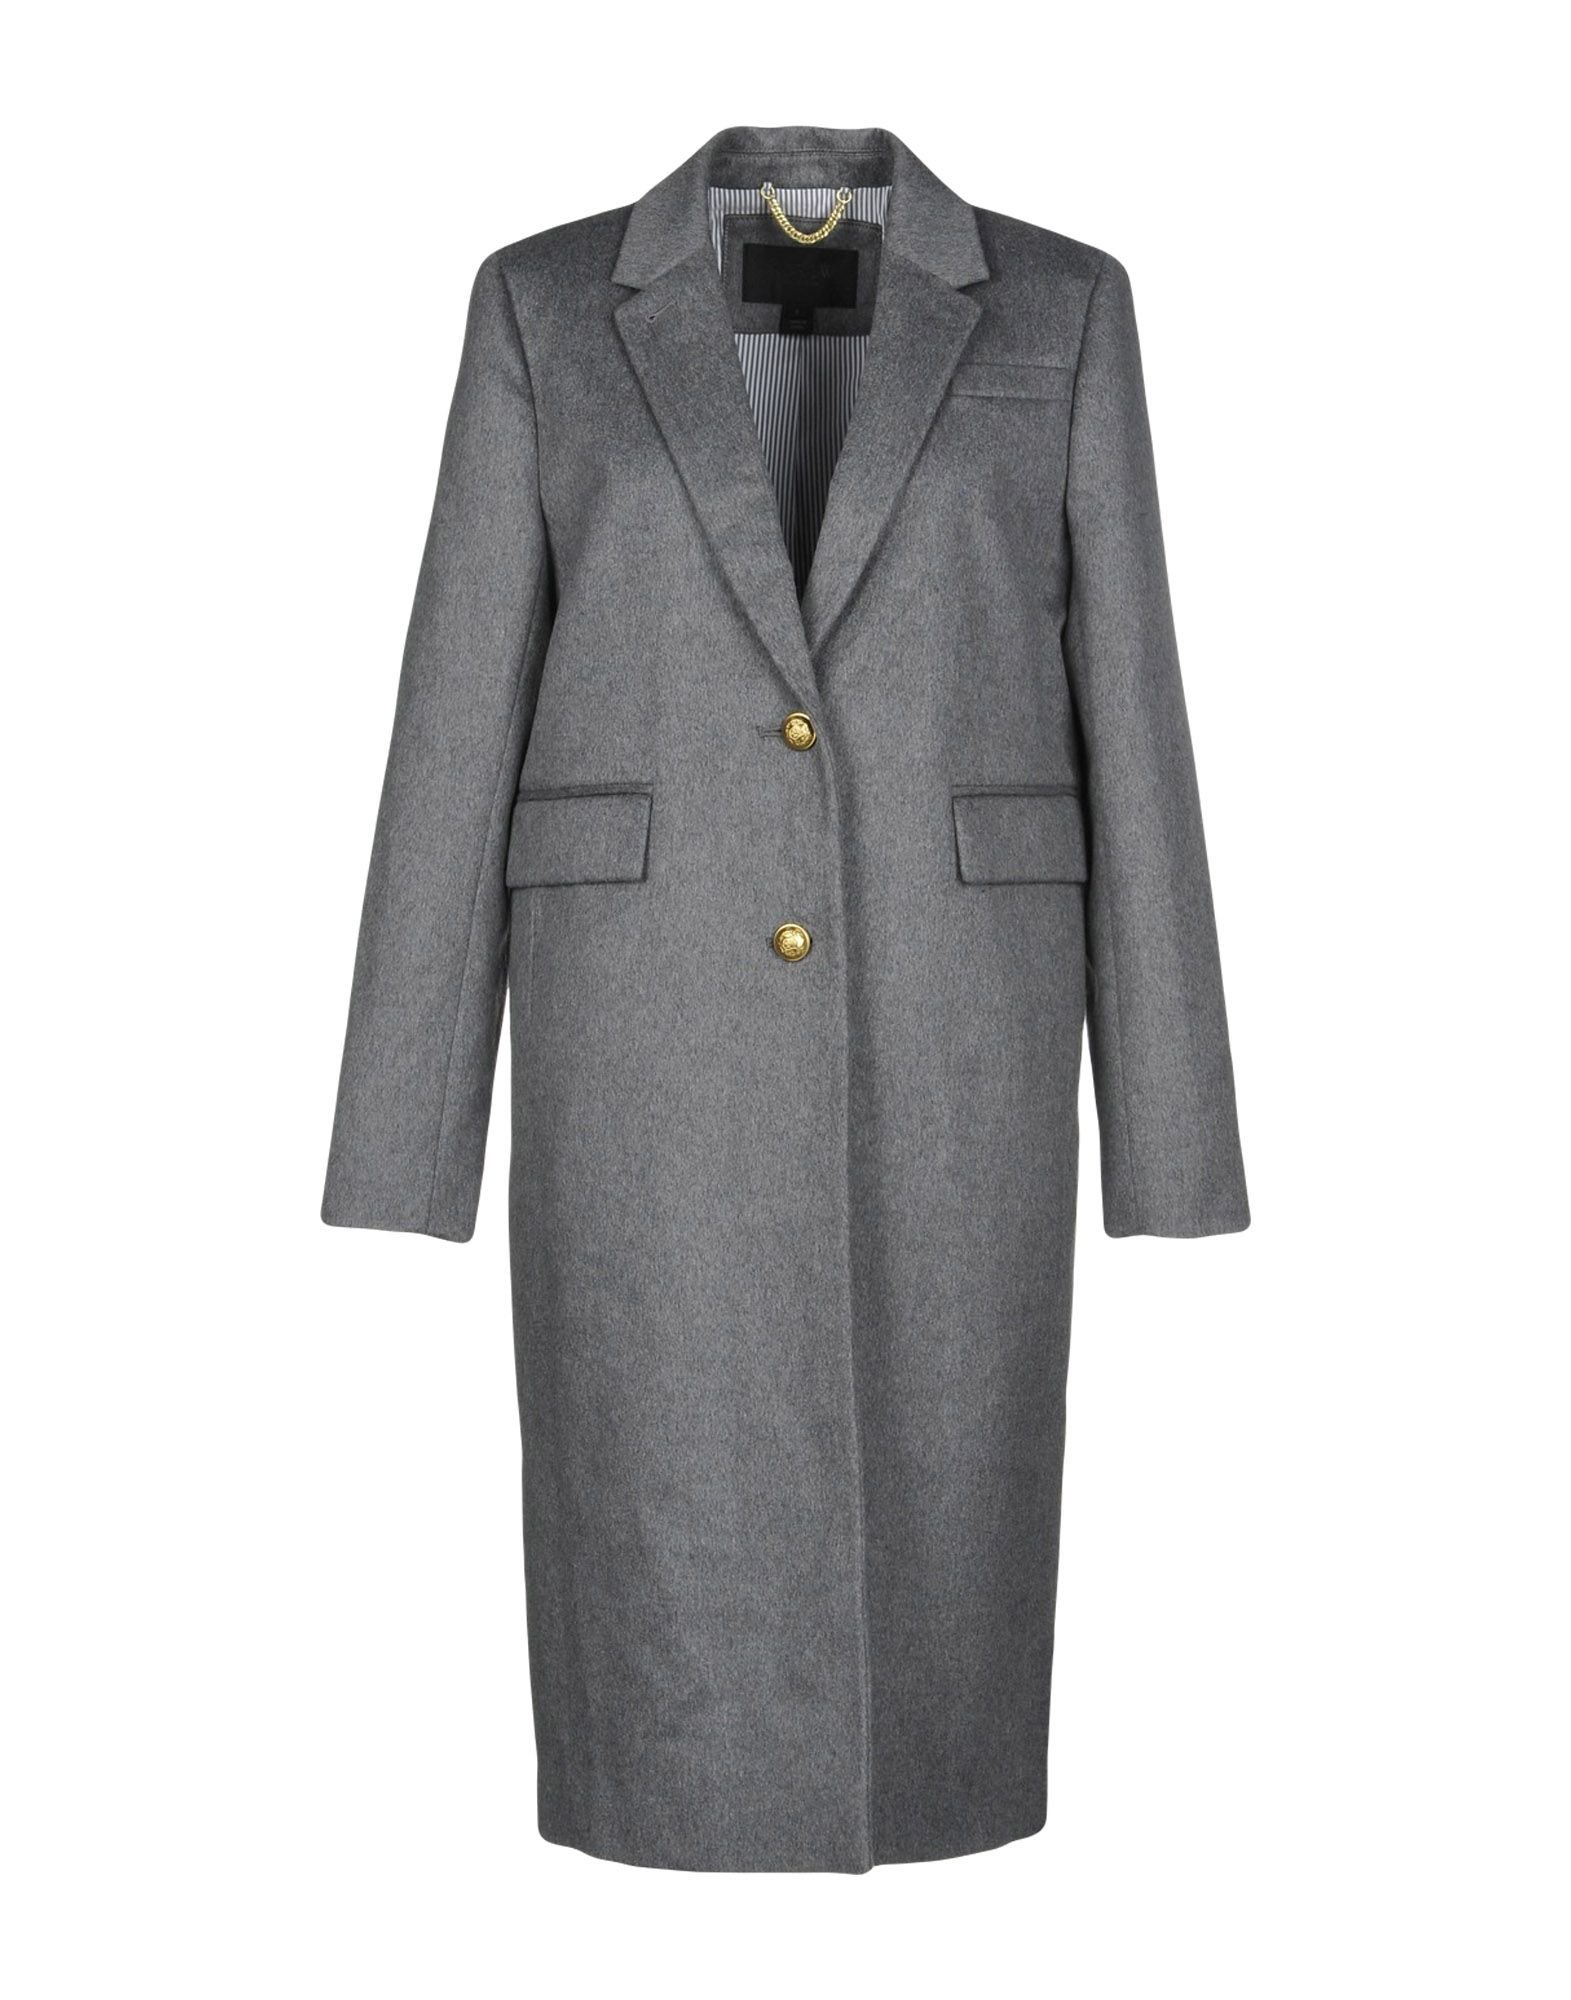 J.CREW Coats. baize, no appliqués, basic solid color, single-breasted, 2 buttons, lapel collar, multipockets, long sleeves, fully lined, rear slit, single-breasted jacket. 80% Wool, 20% Cashmere